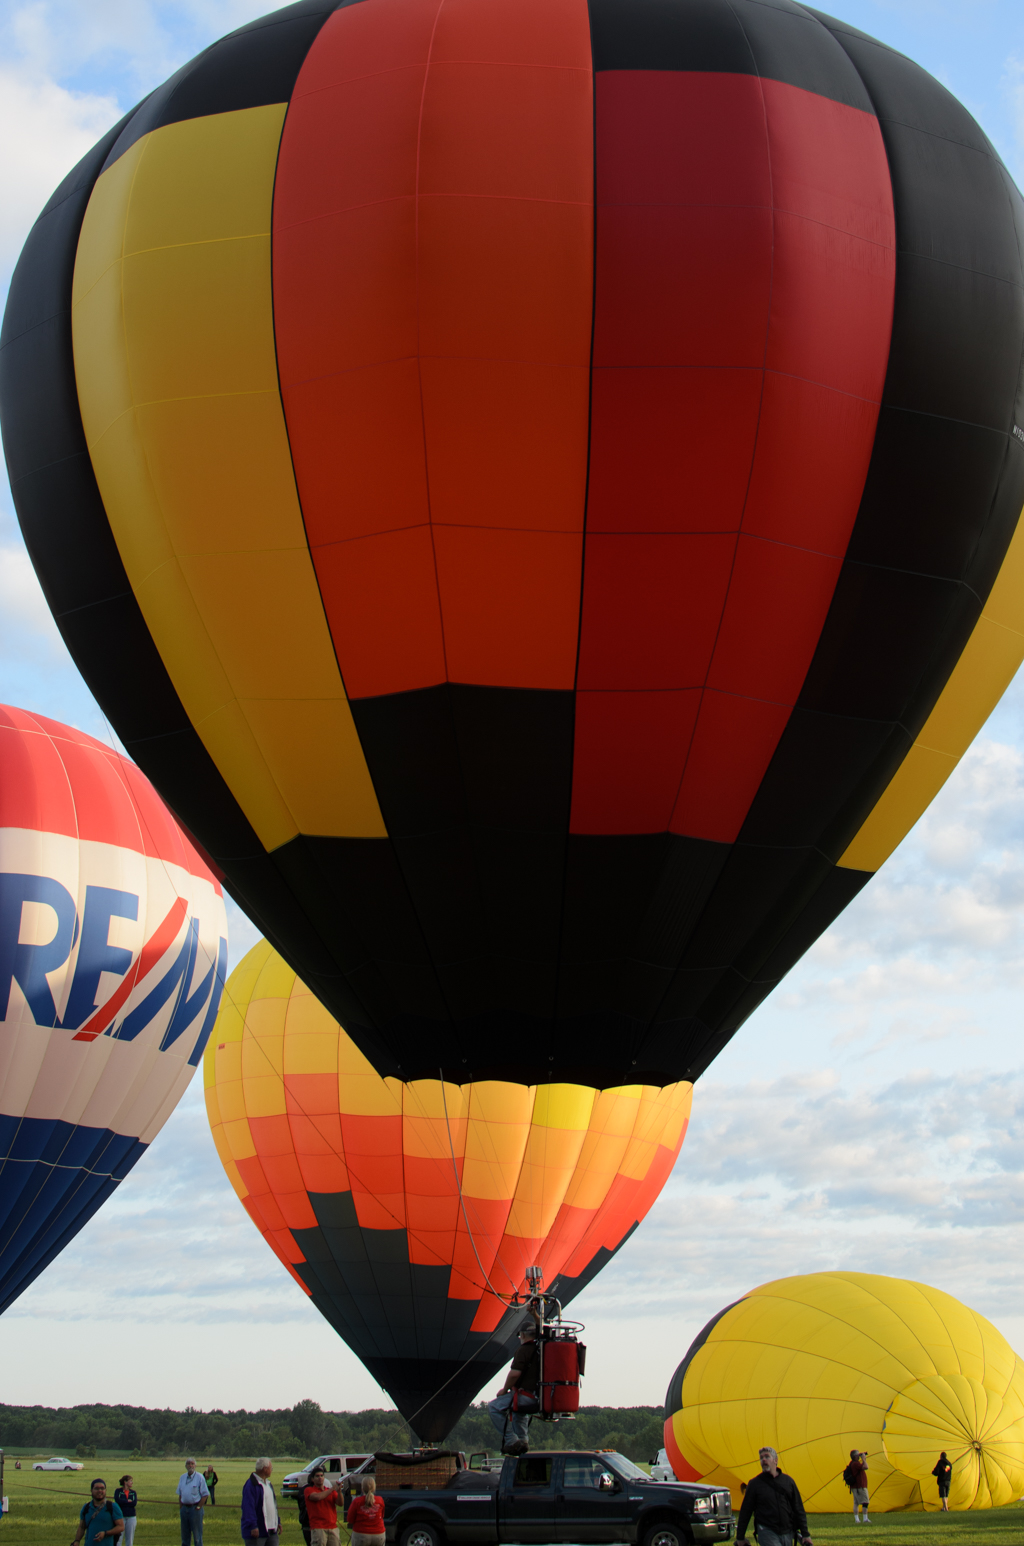 32nd annual New Jersey Festival of Ballooning, wpid14588 NIKON D5100 20140725 1023 Edit